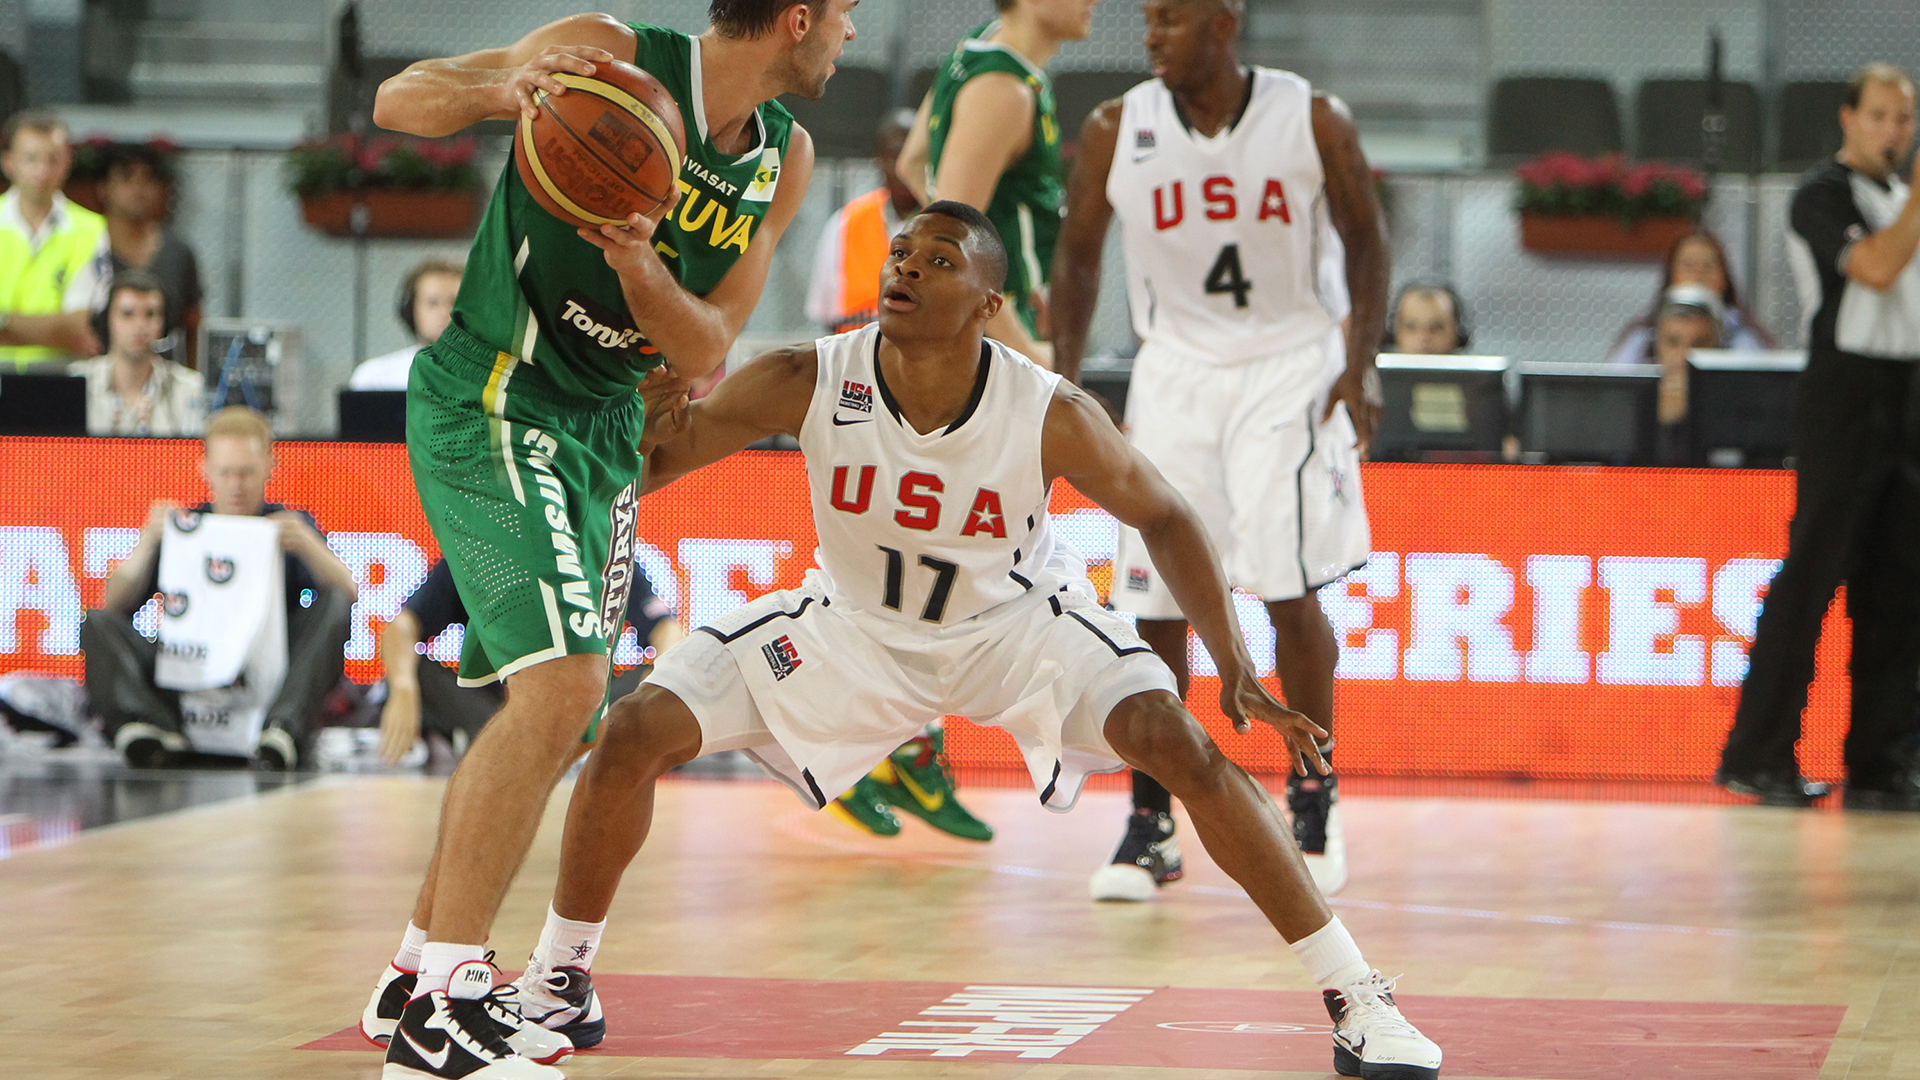 Russell Westbrook on defense vs Lithuania